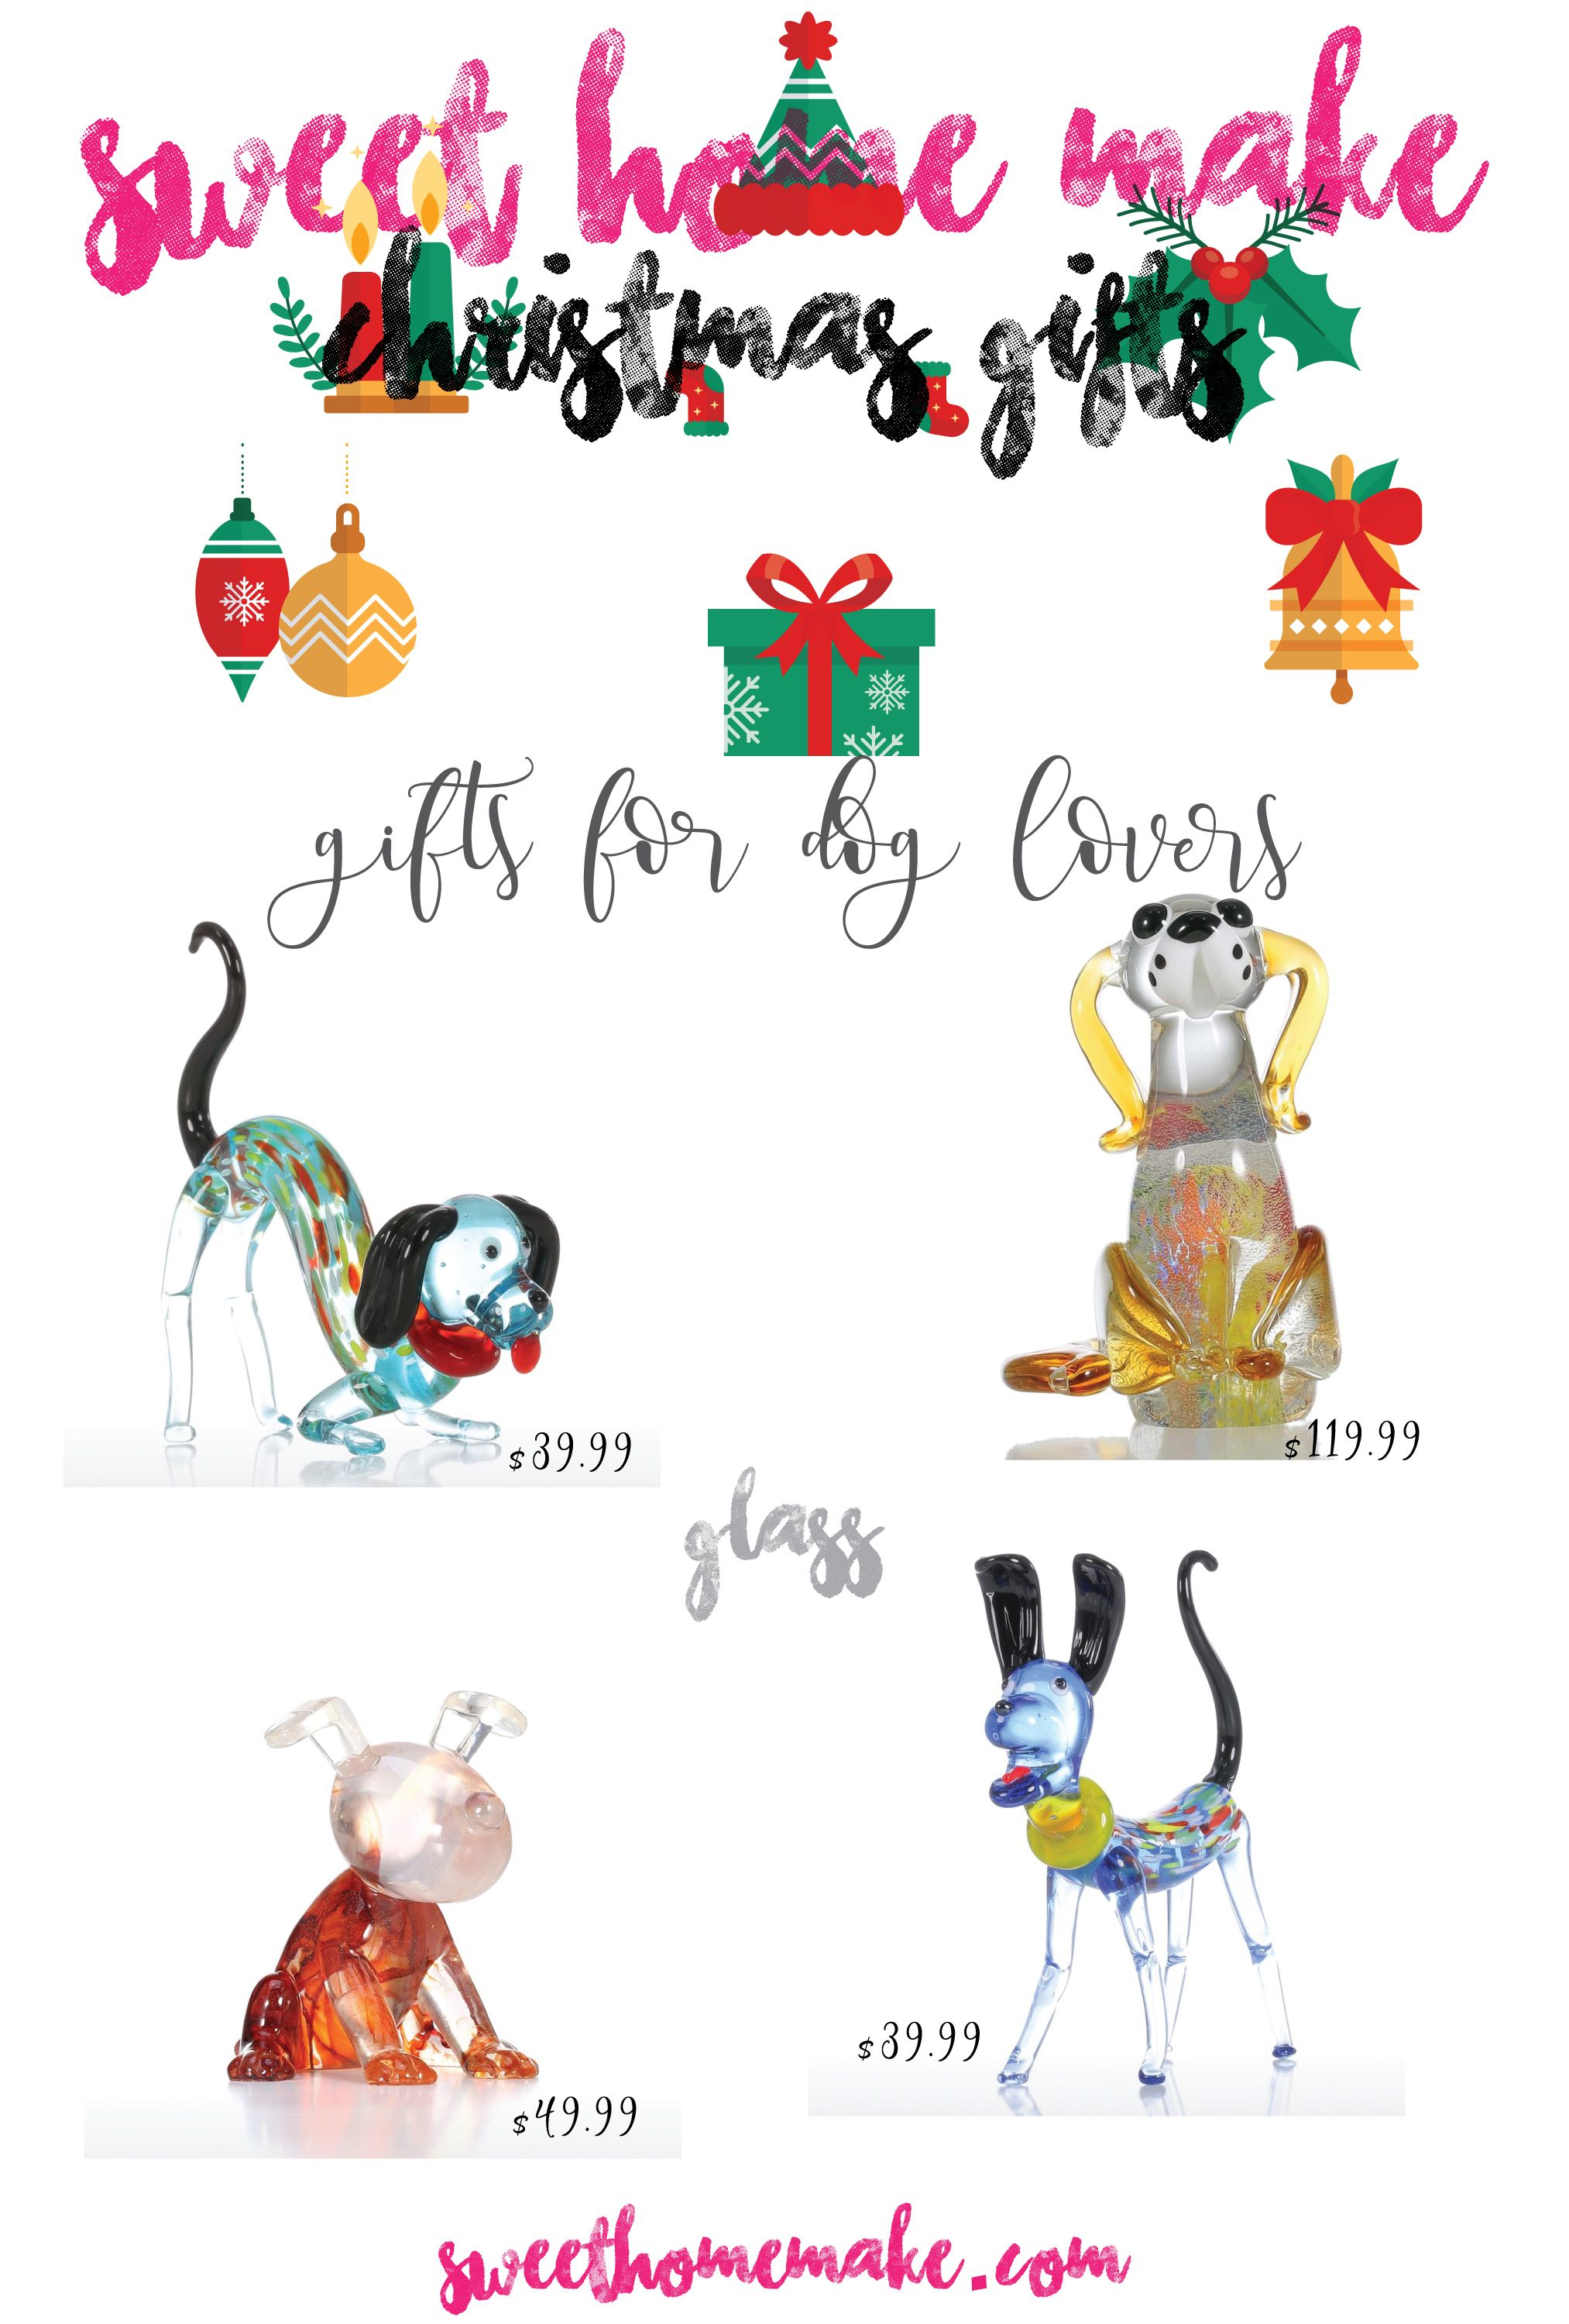 Adorable Glass Puppies for Christmas Gifts for Dog Lovers